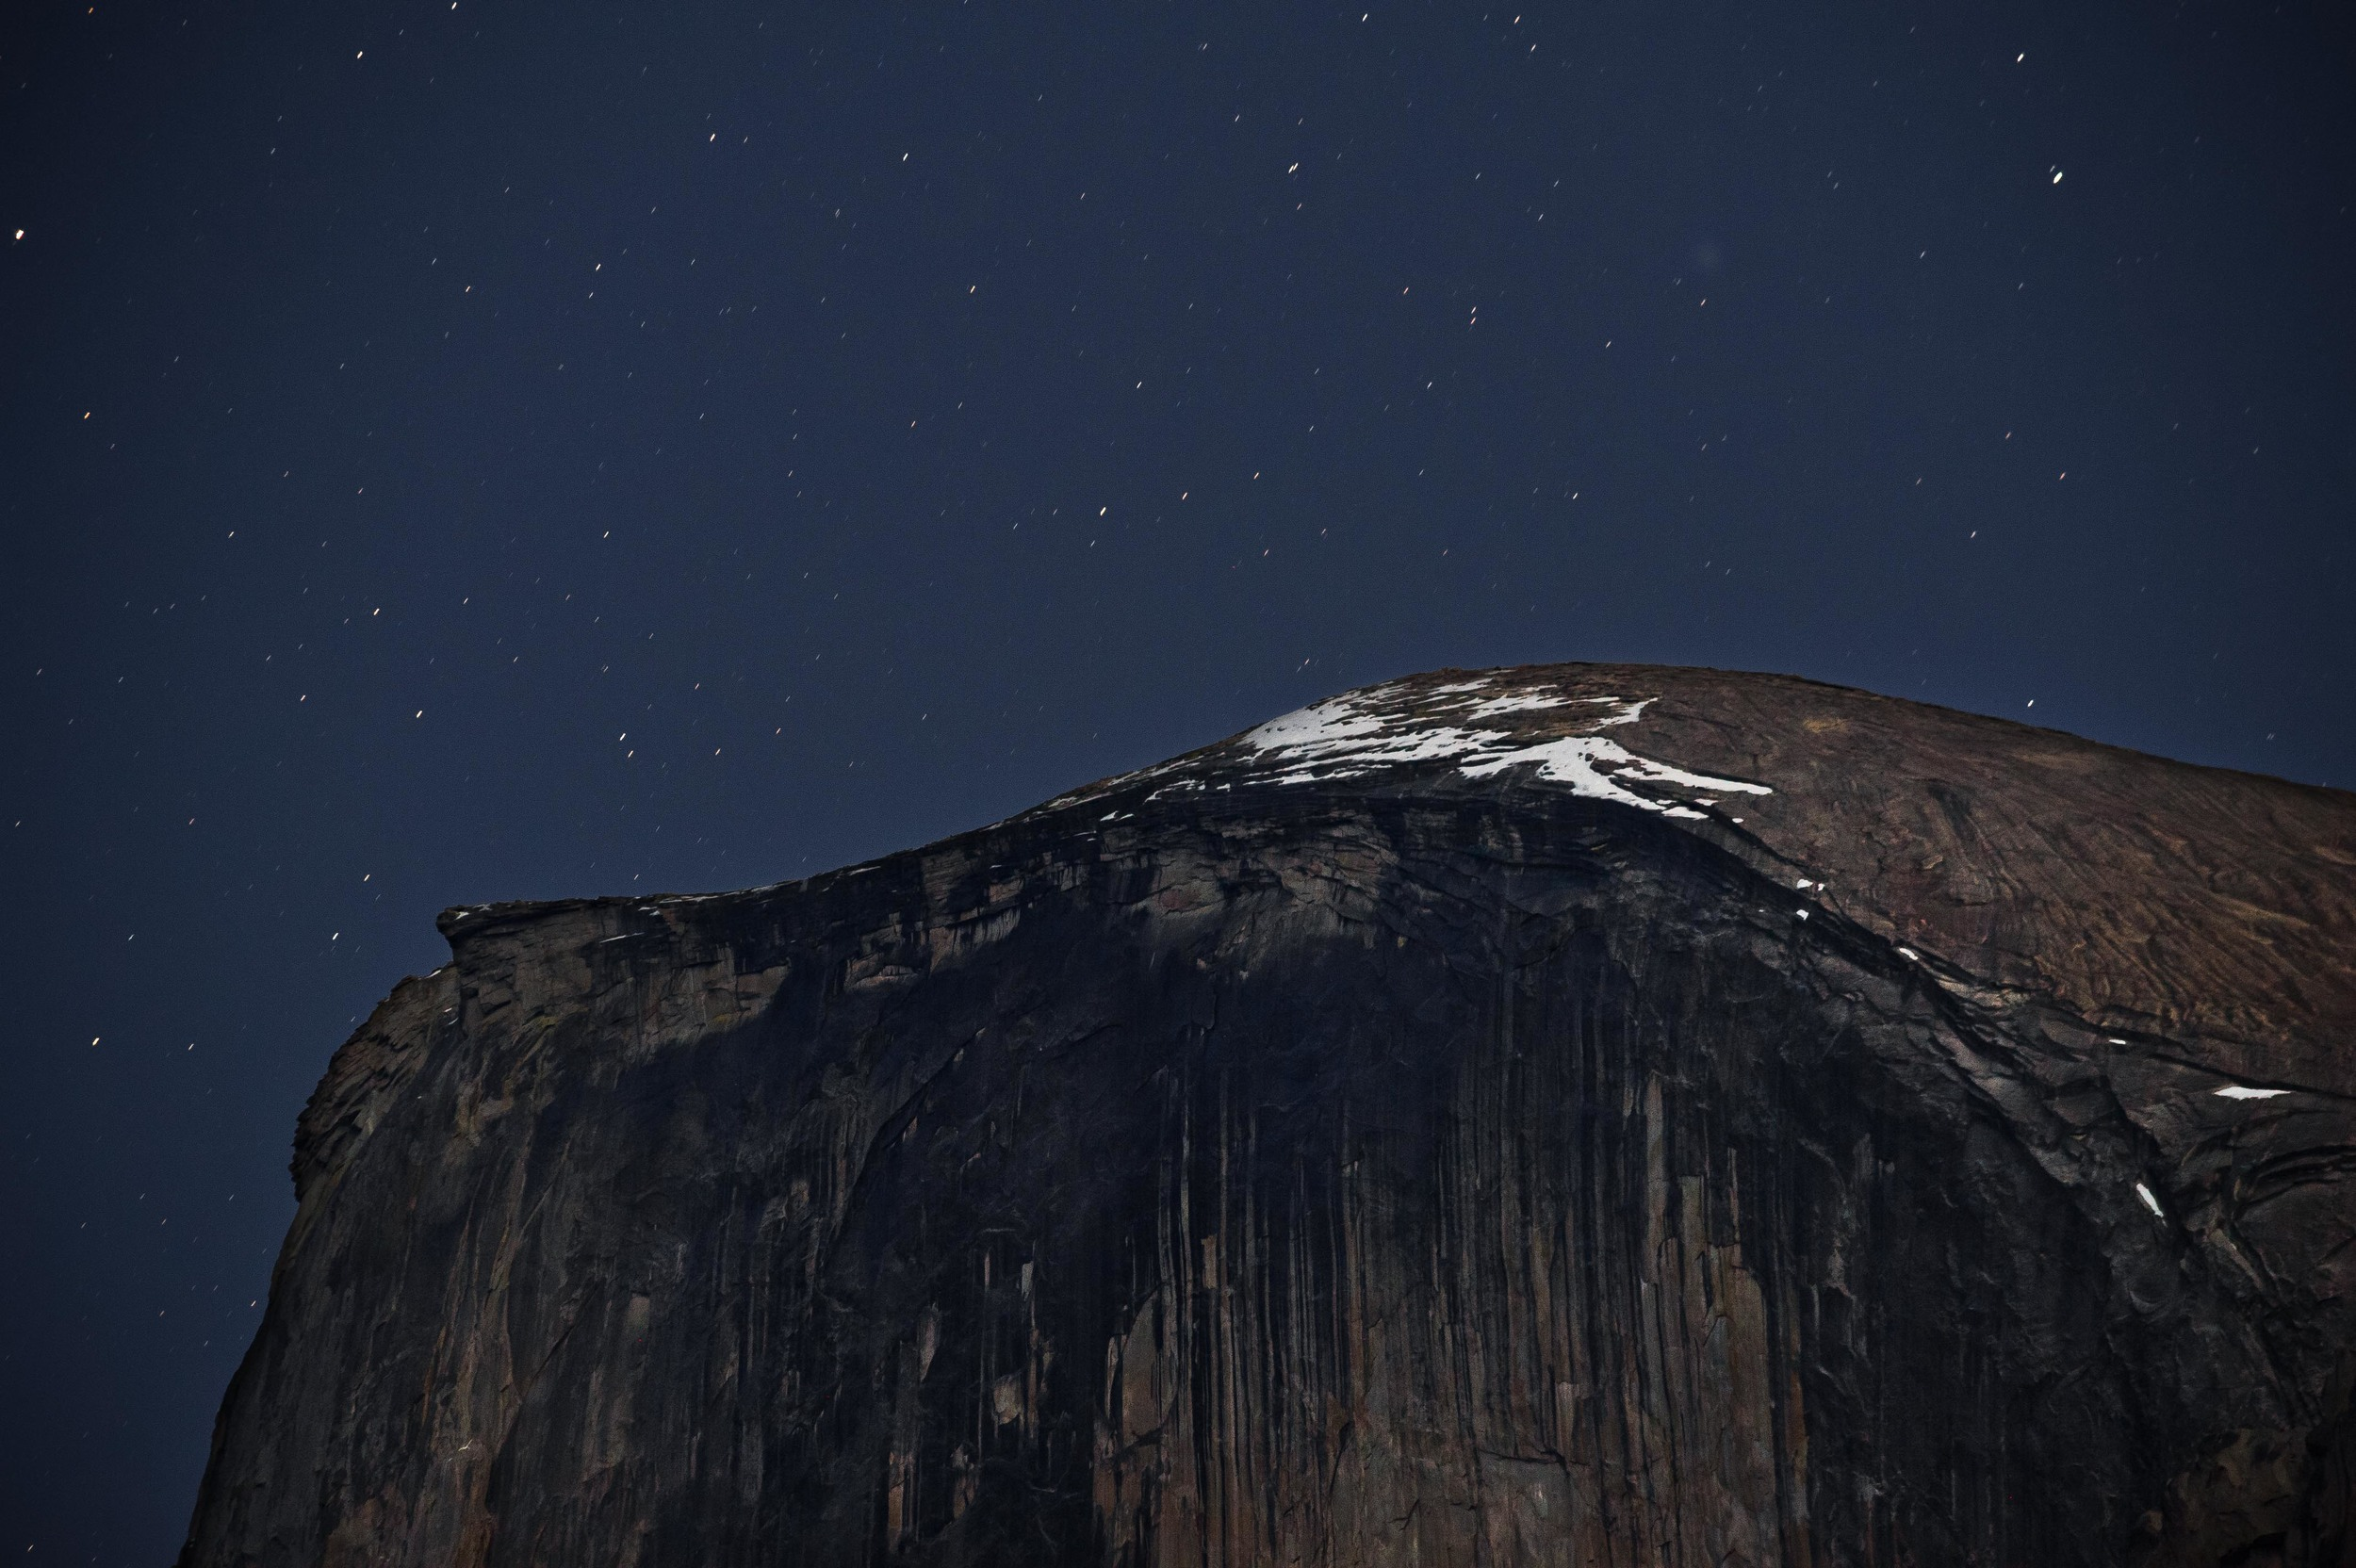 Half-Dome, Yosemite National Park. 2015